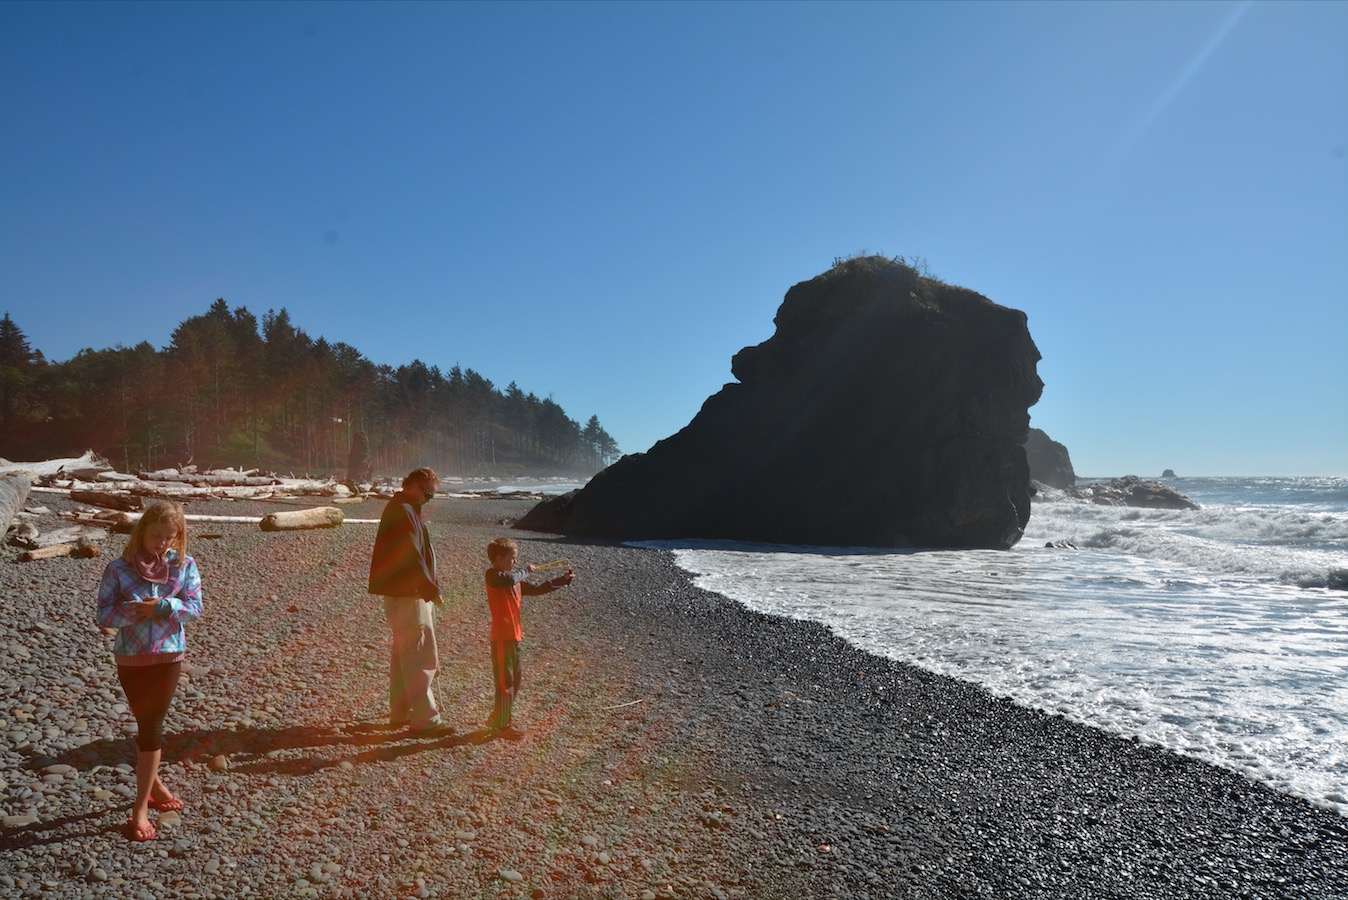 A young boy practices with his slingshot along the Pacific coast as his father looks on